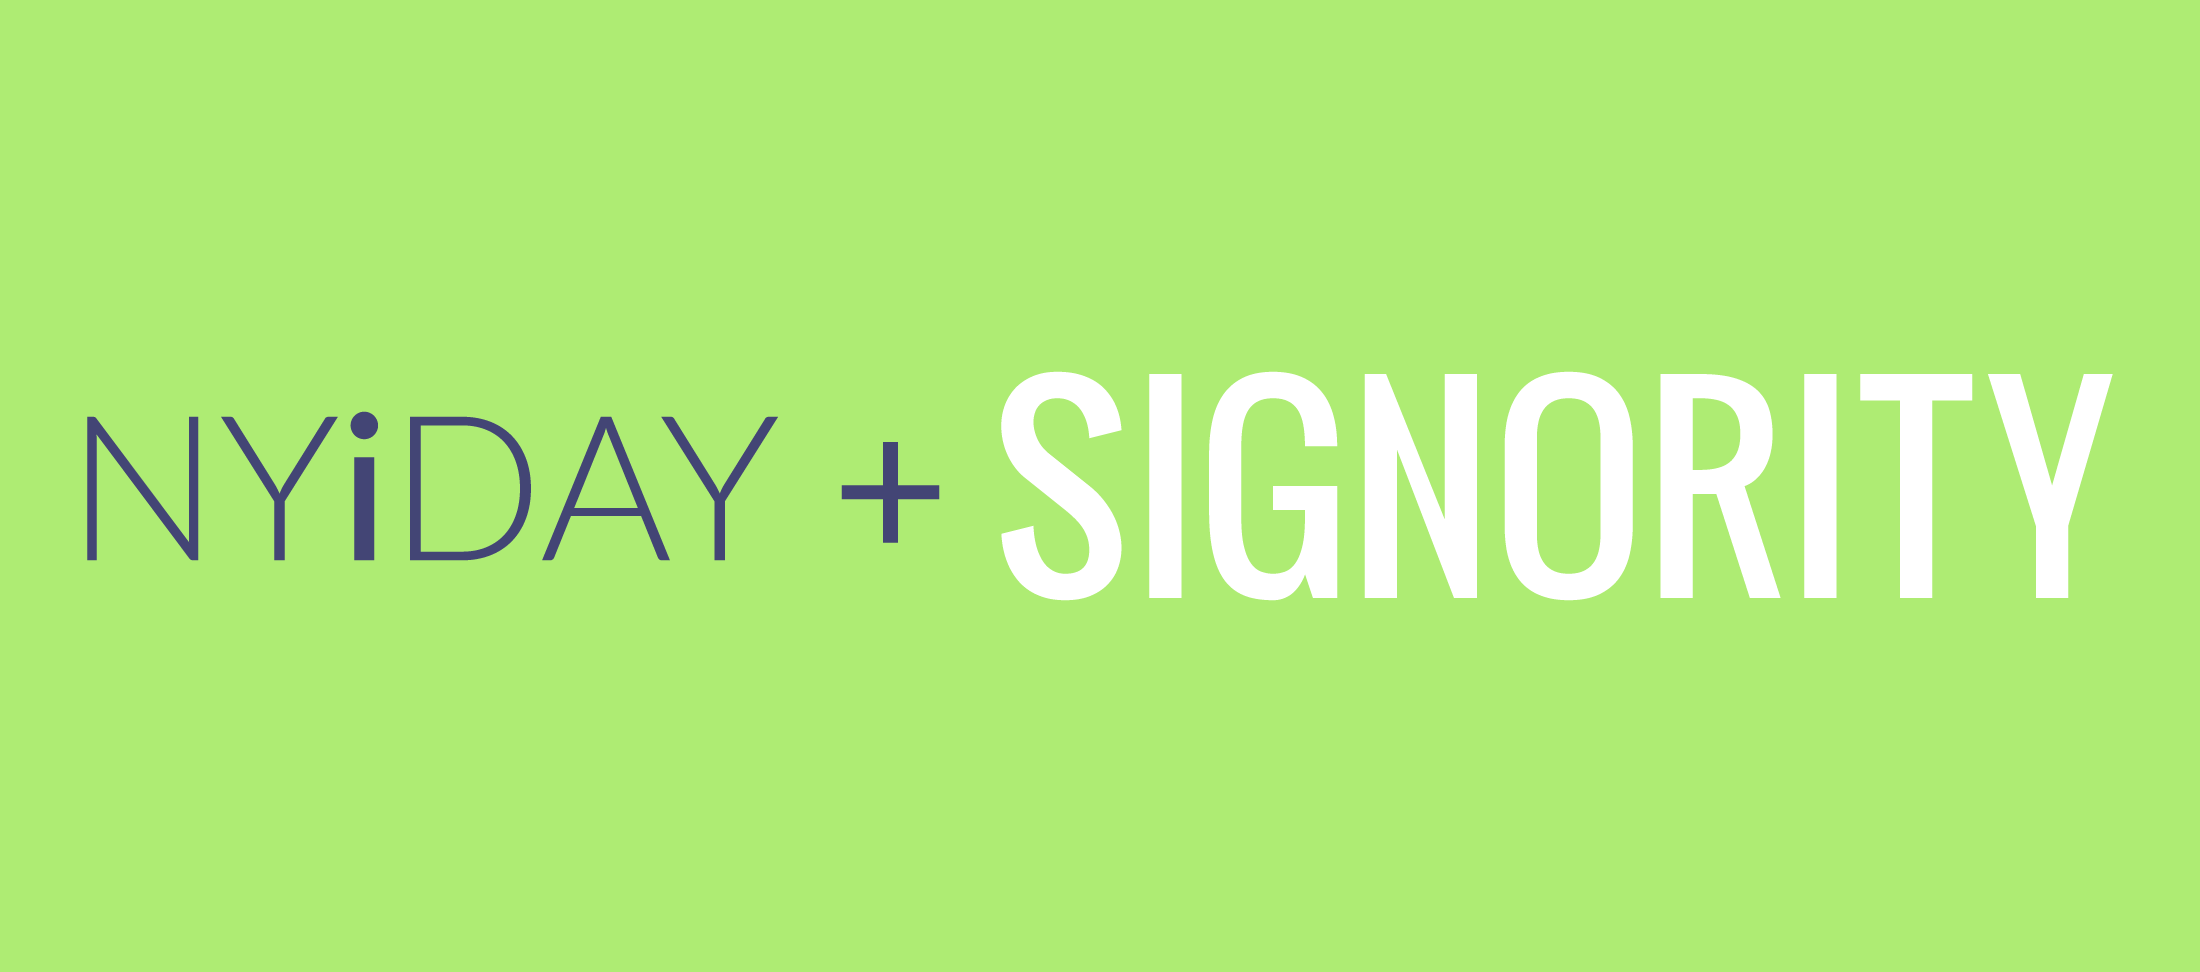 Signority Sponsors NYIDAY